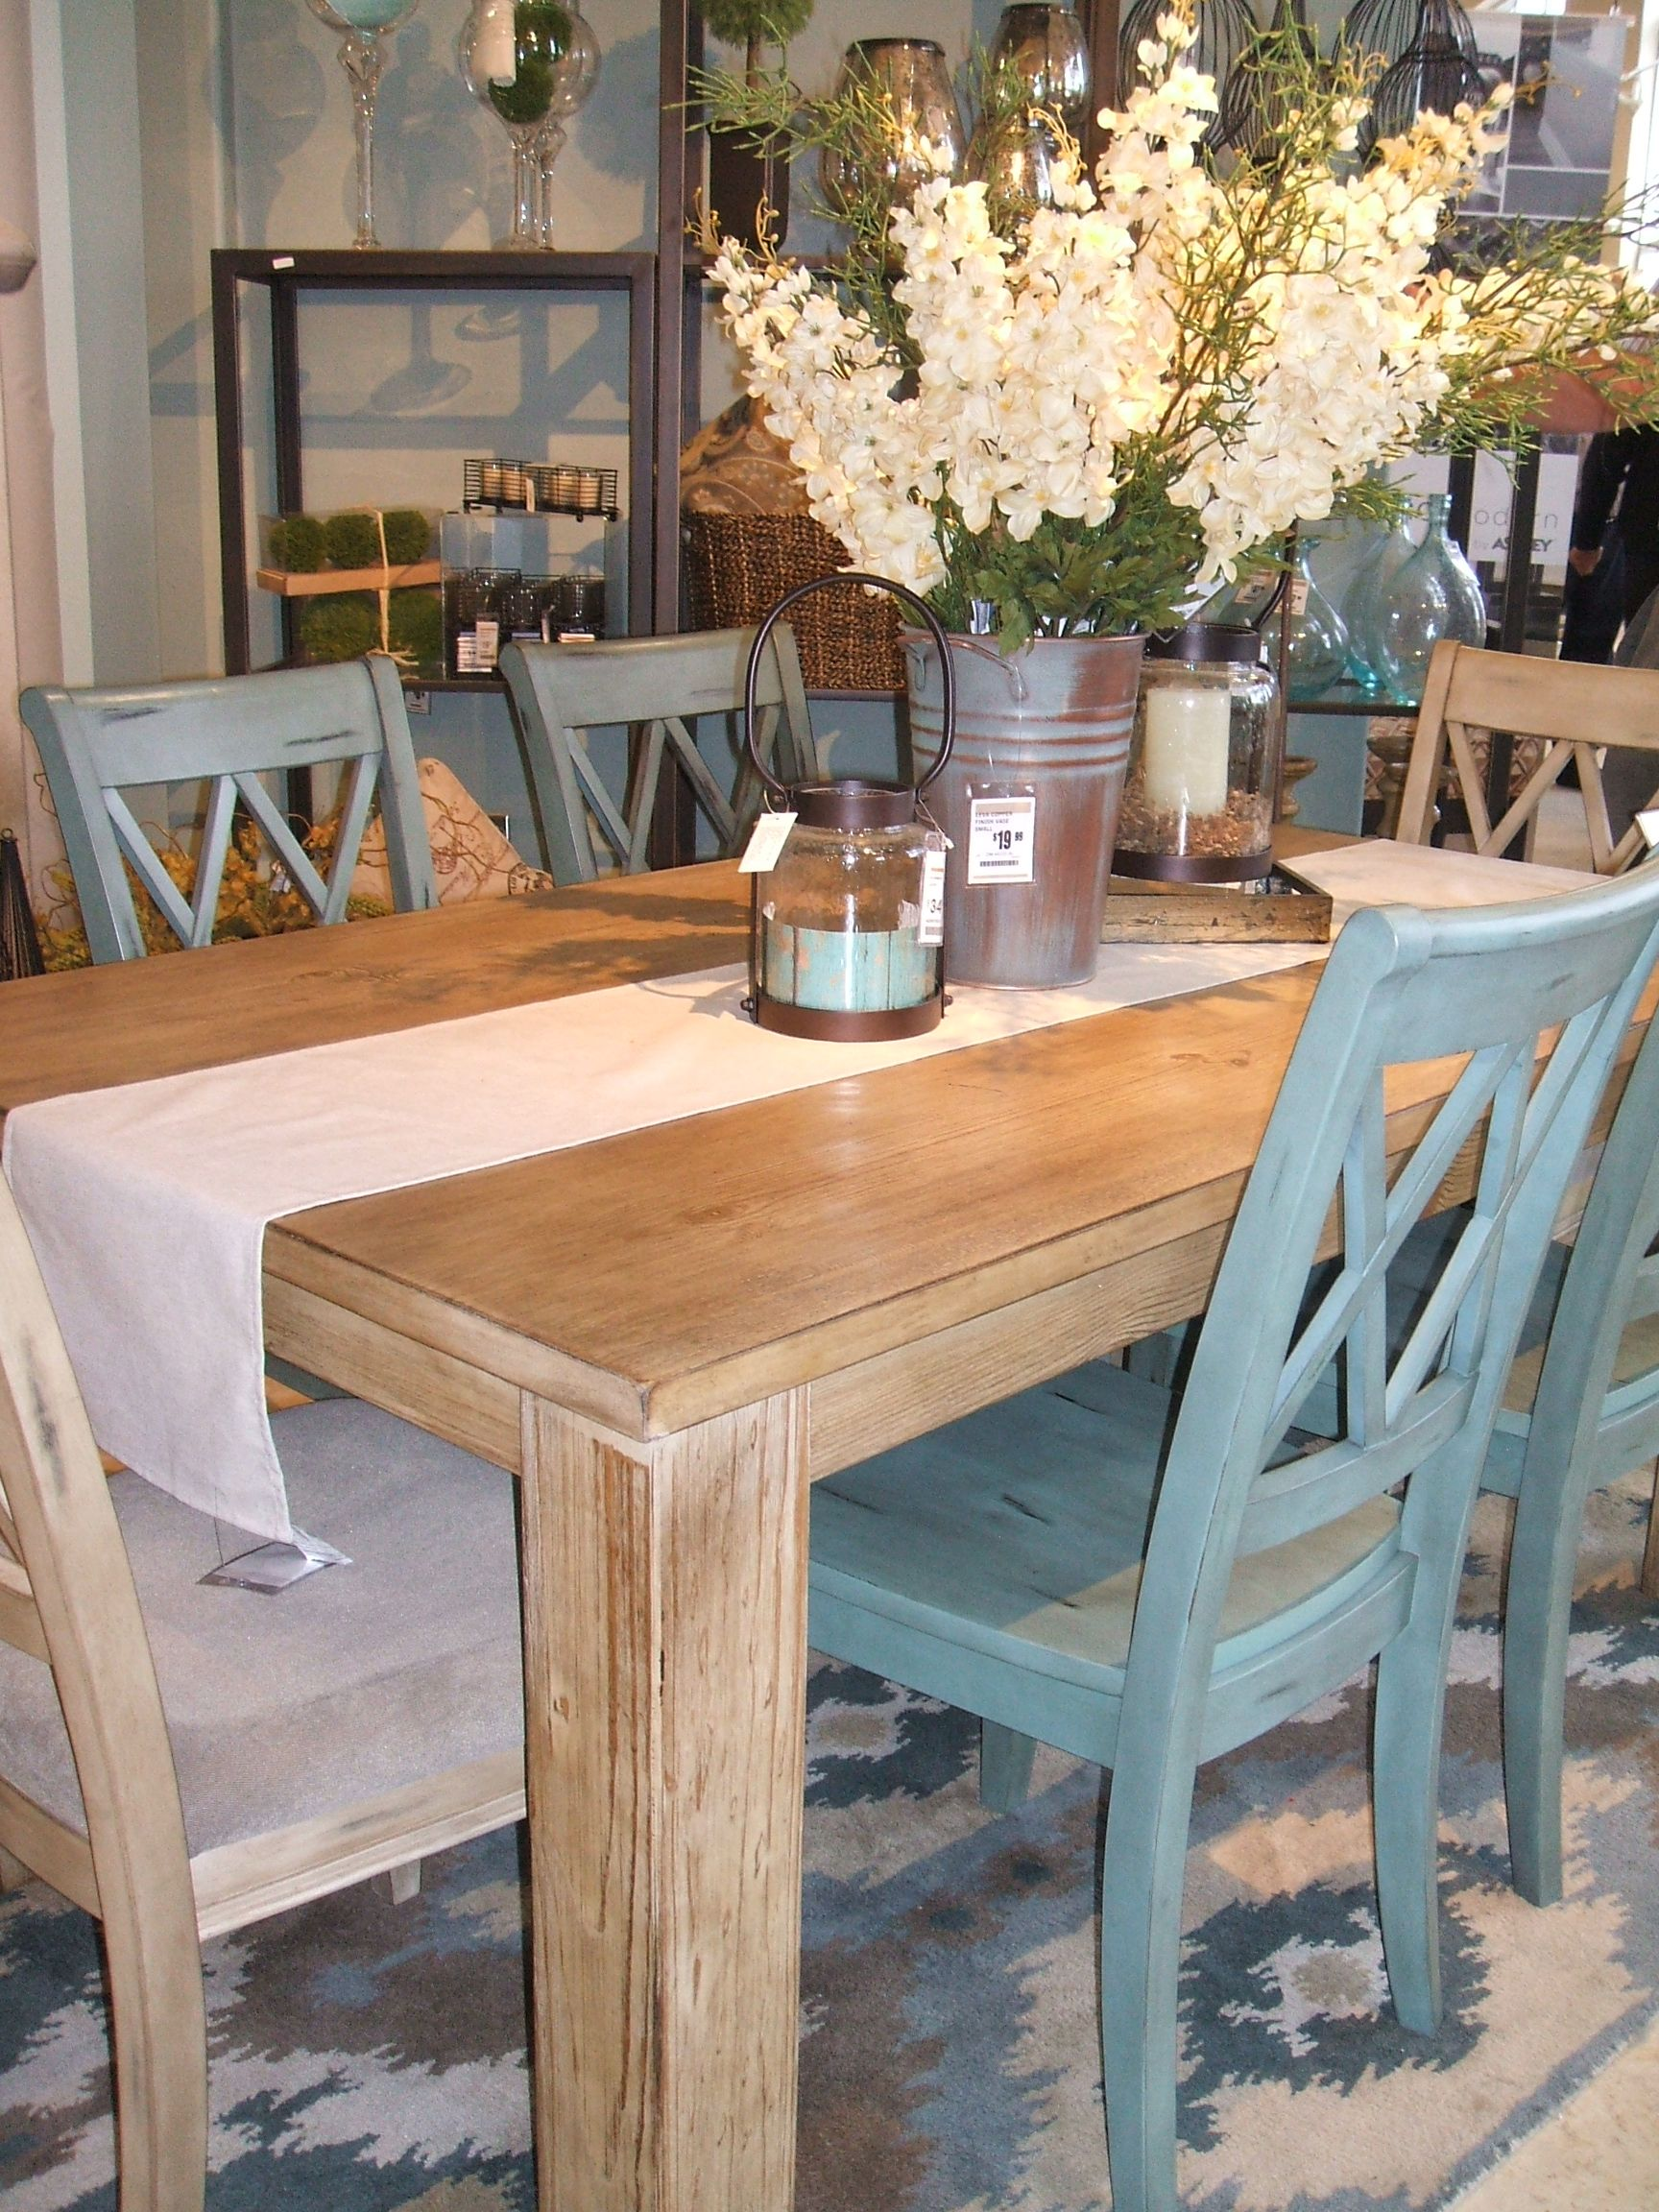 Farmhouse Kitchen Chairs Fruit Love The Table Dressing With Mix Of Cool